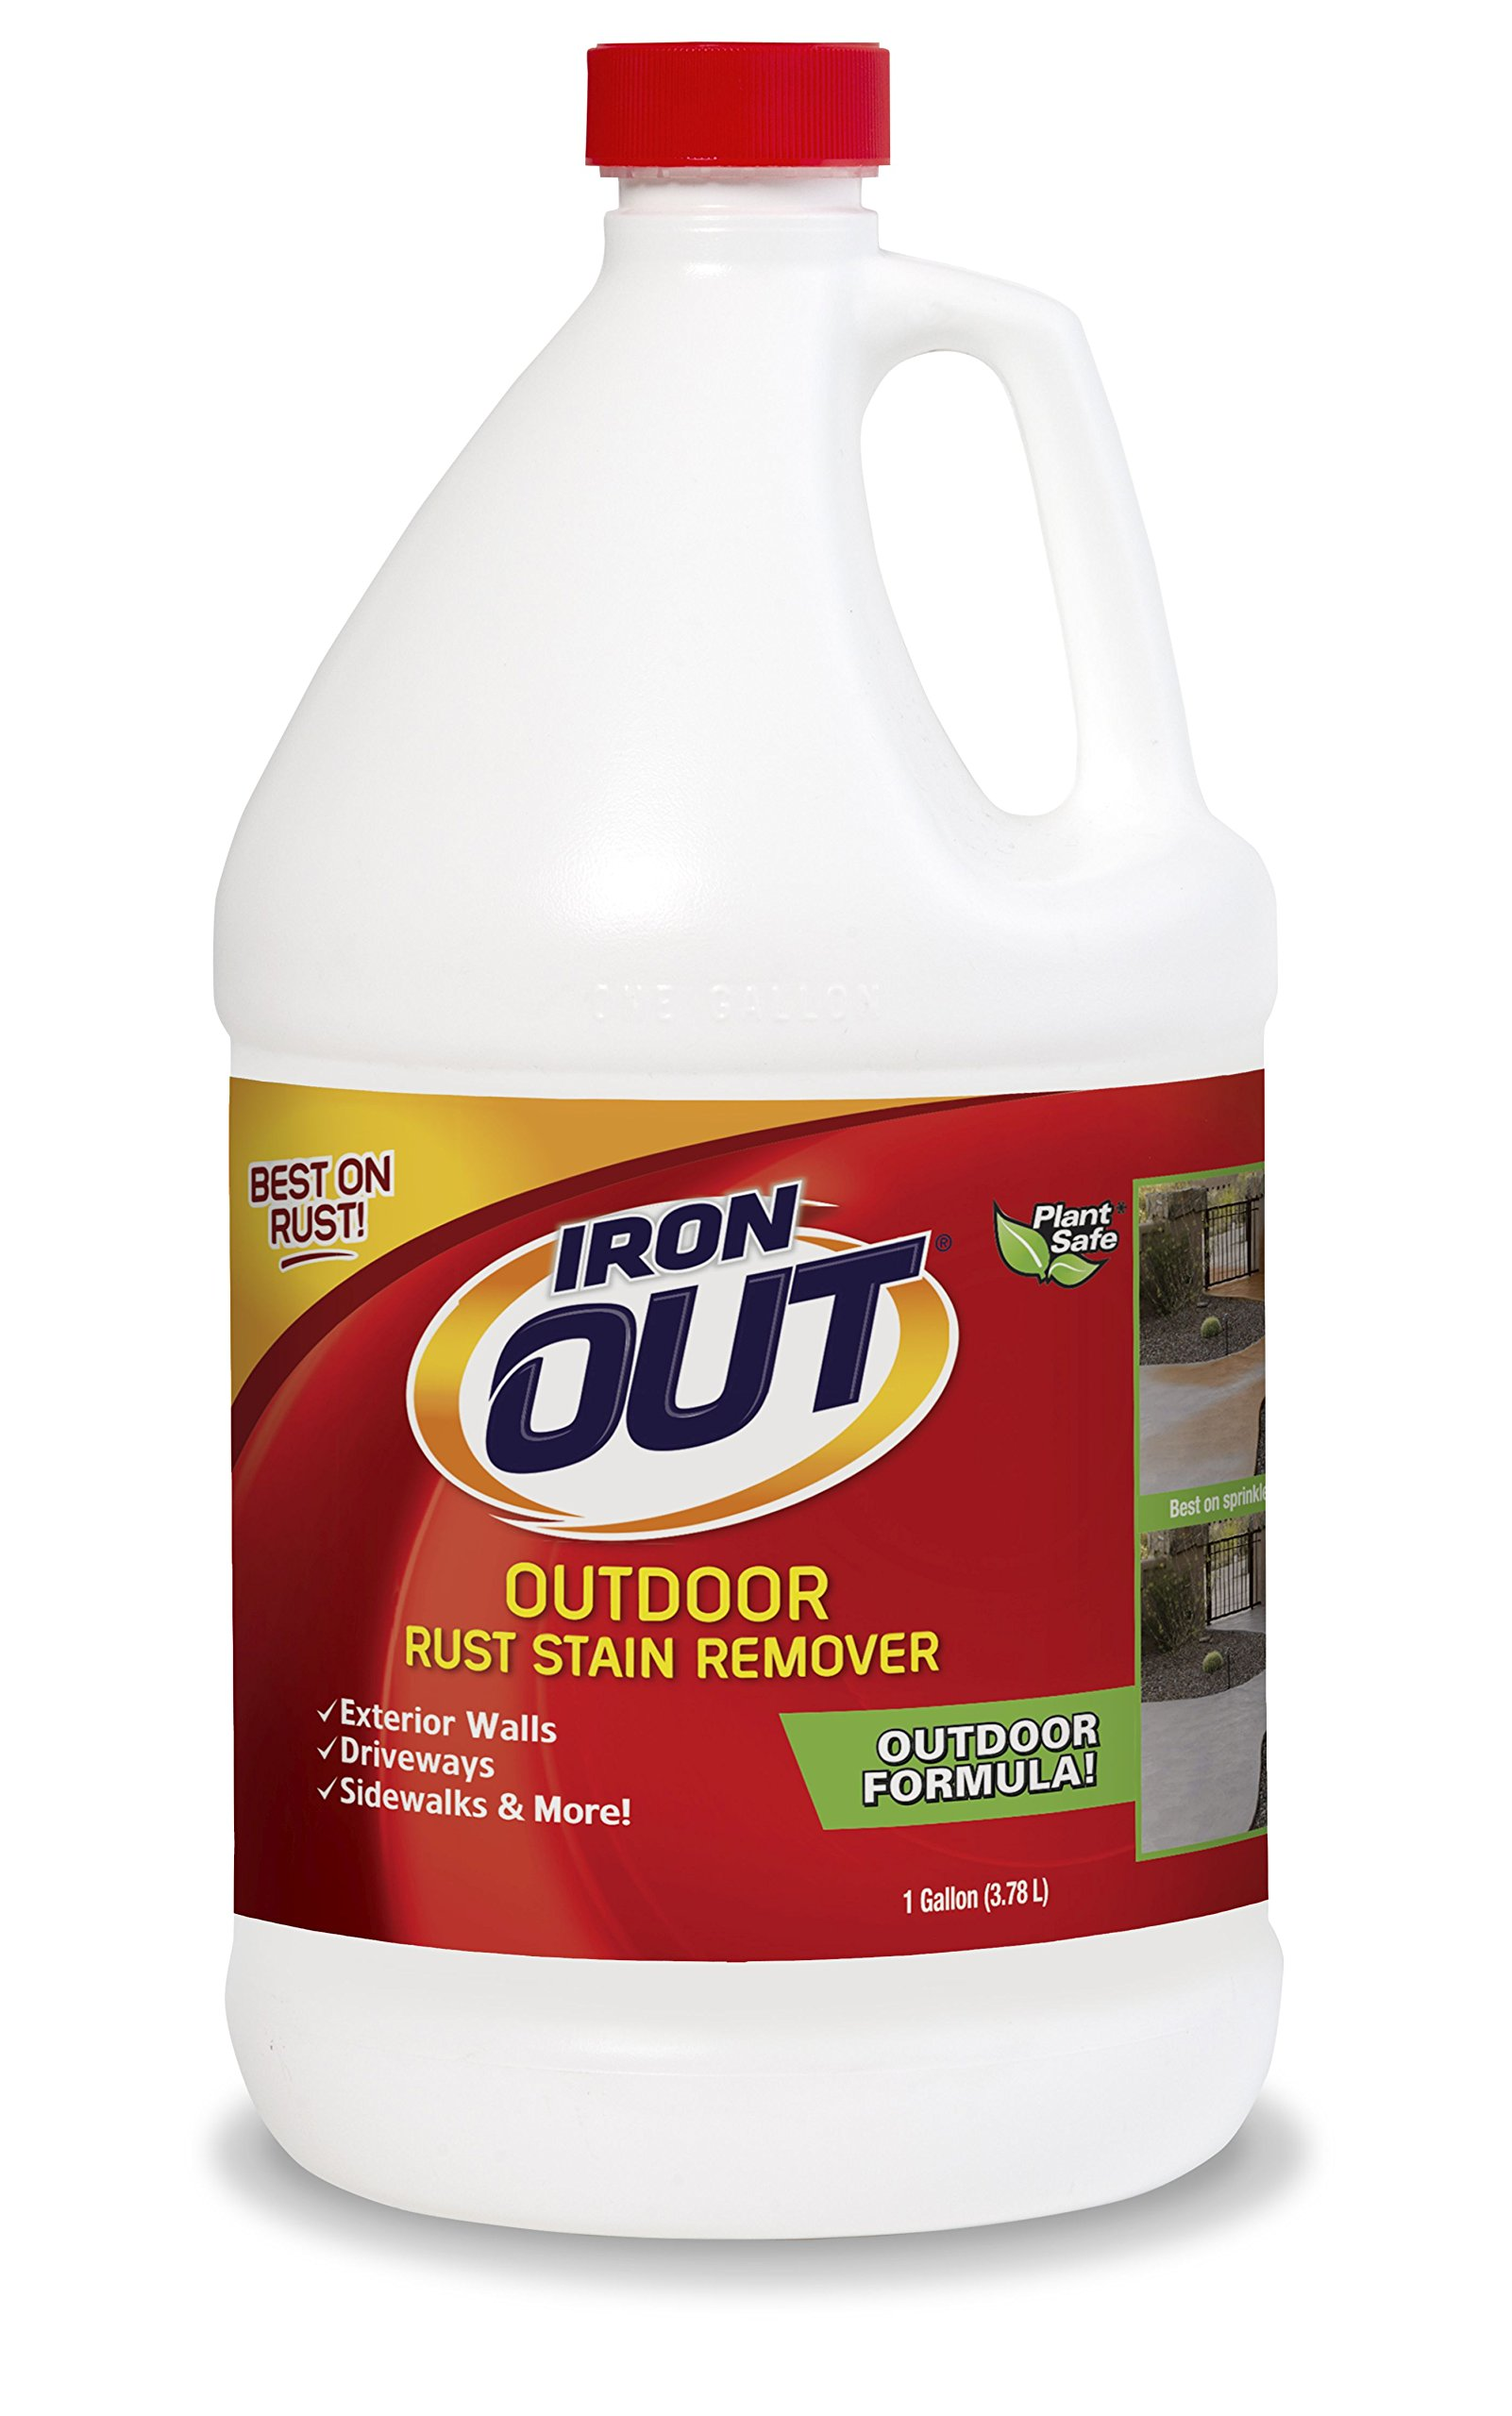 Iron OUT Outdoor Rust Stain Remover, 1 Gallon, 4 Pack by Summit Brands